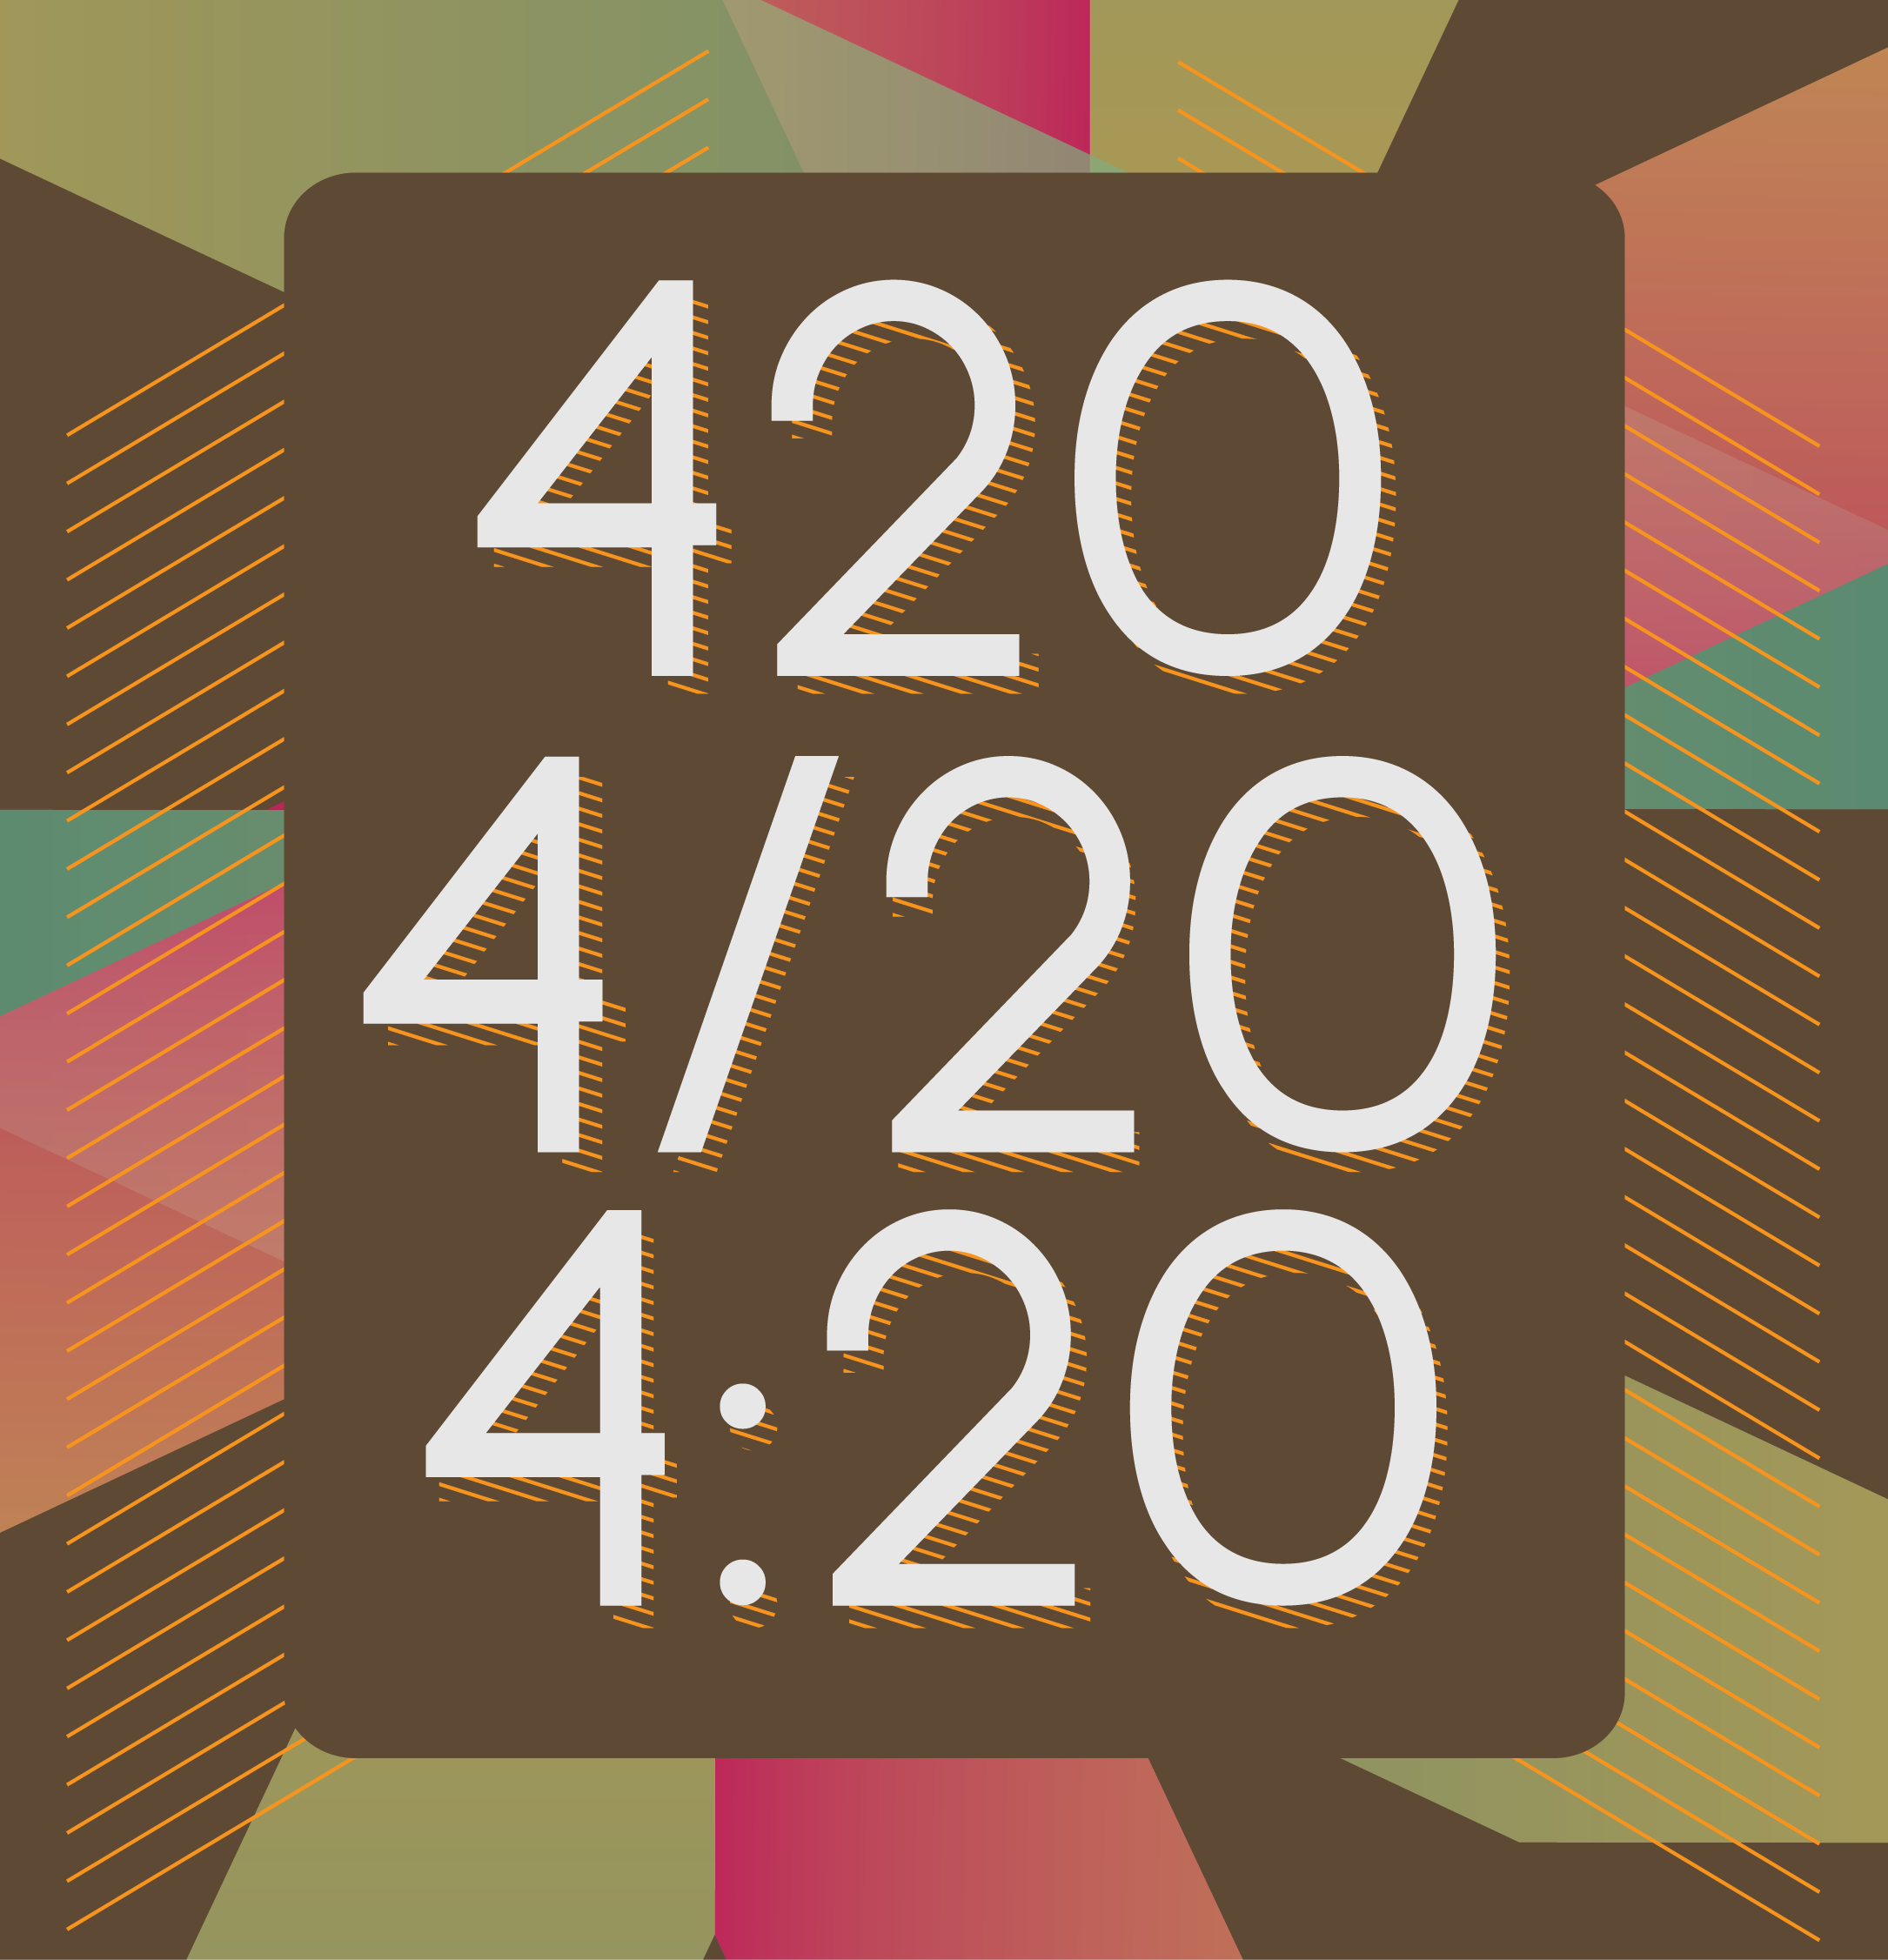 420 on 4/20 by 4:20 – Preparing the Soil – Part 1